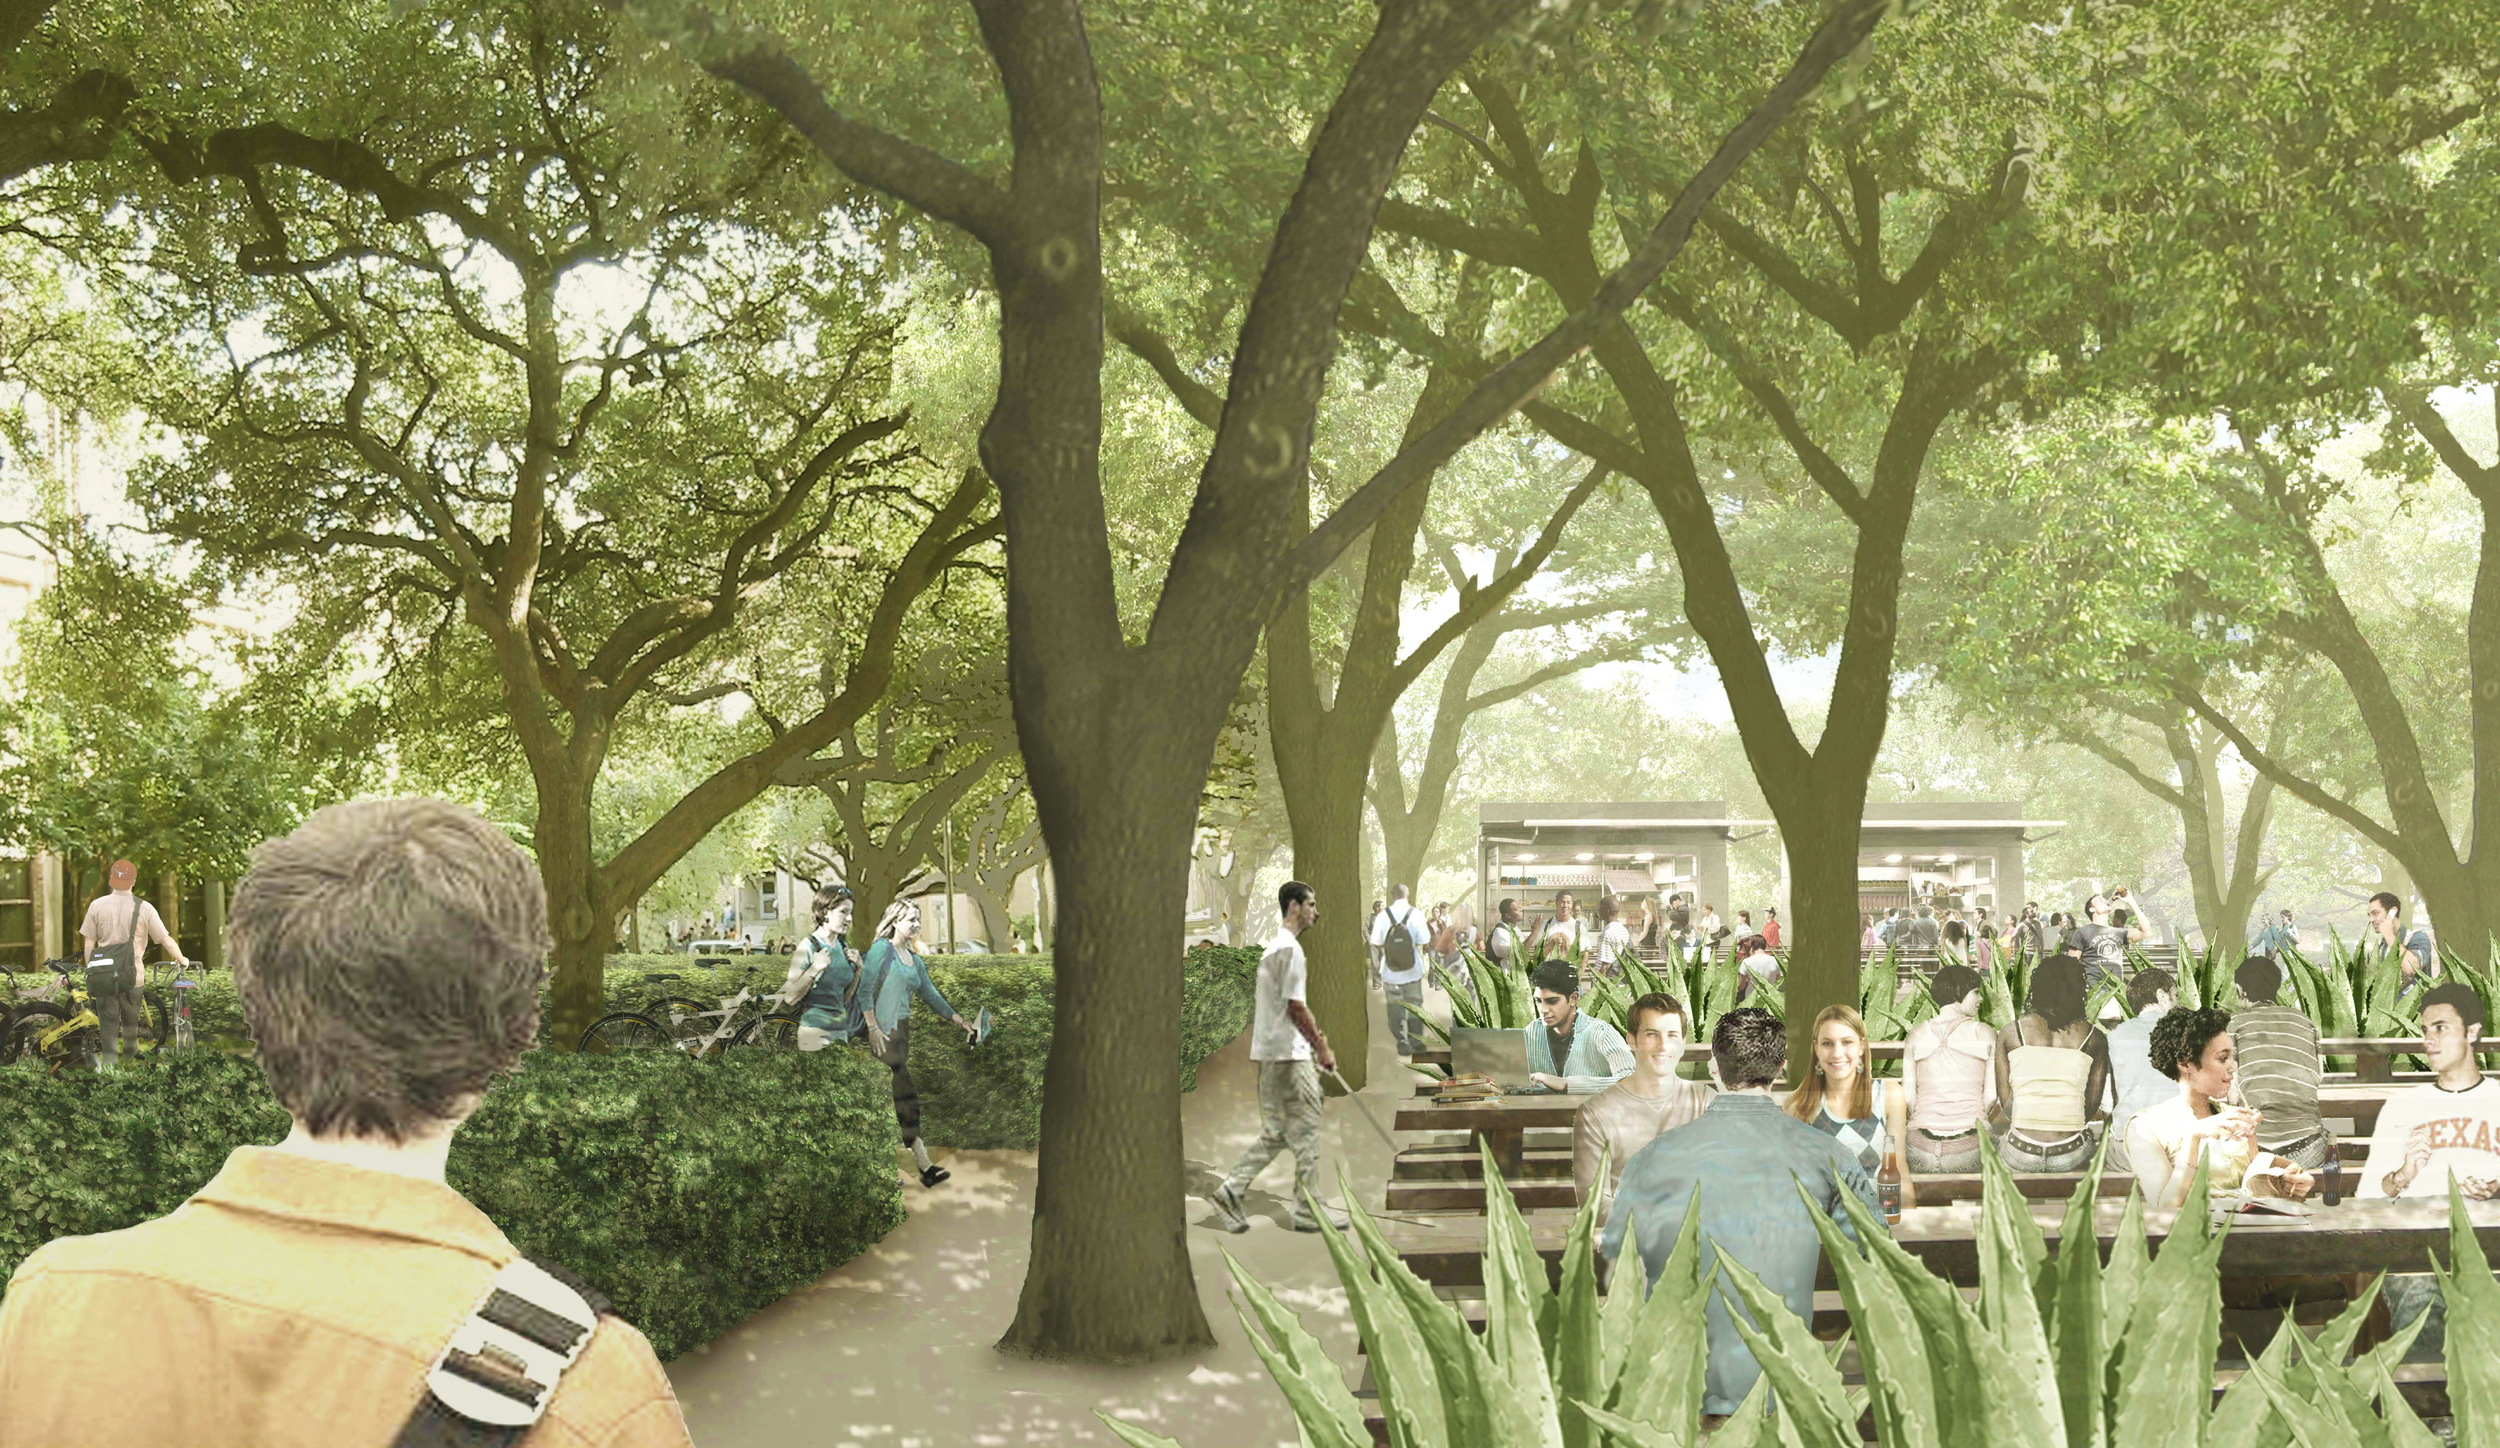 One of the many planned cafe gardens along the pedestrian mall